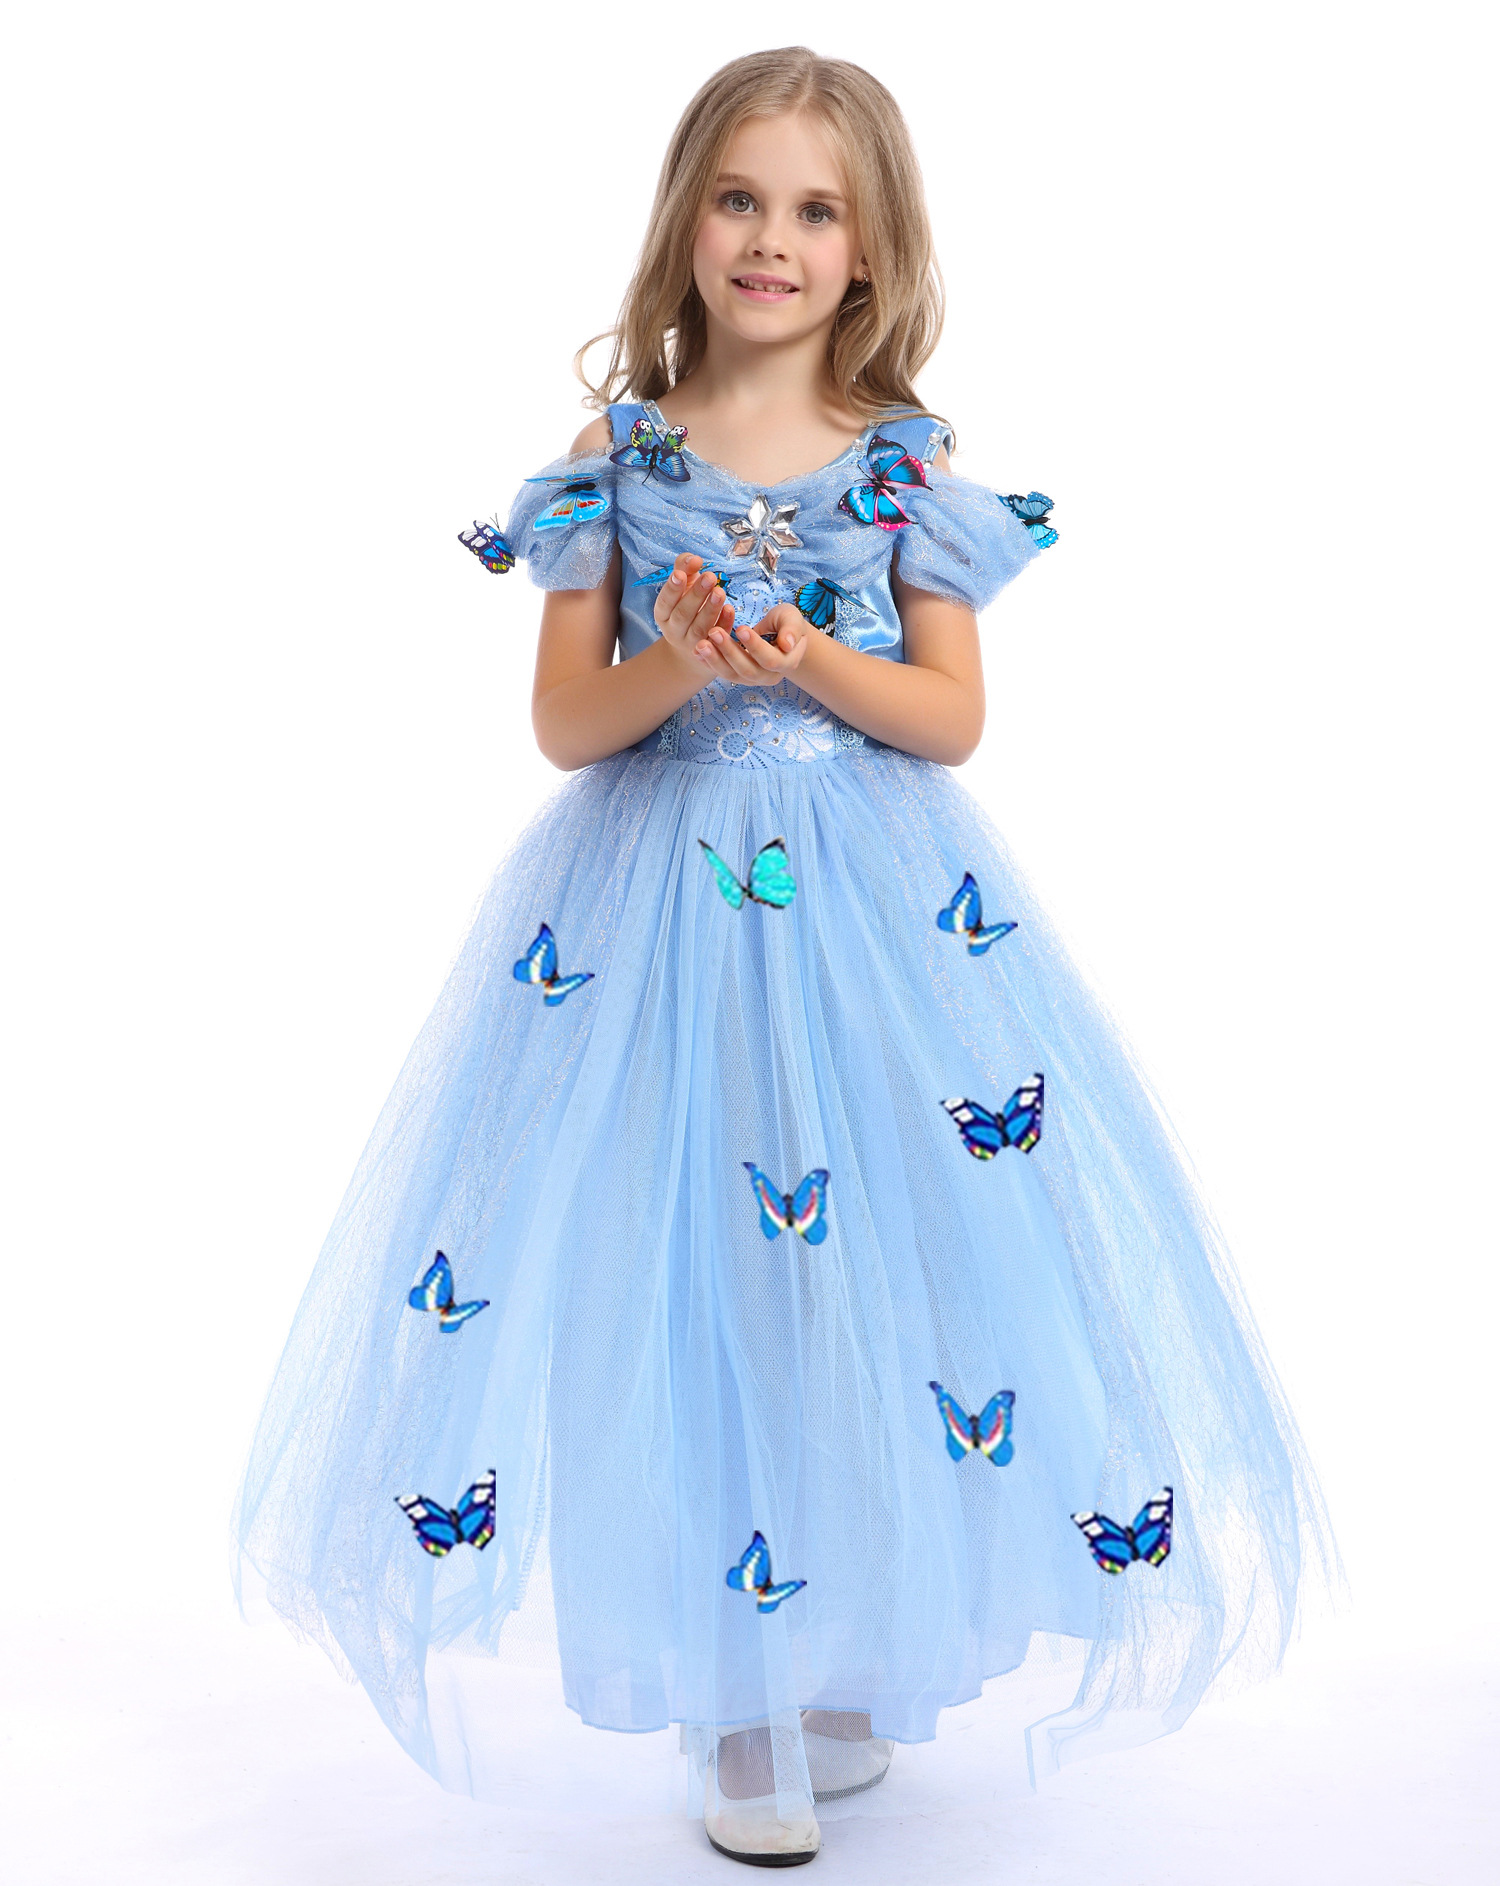 Halloween Children's Clothing Cartoon Pink Princess Dress For Girls Party And Evening Tutu Costume Pageant Formal Gown For Teen